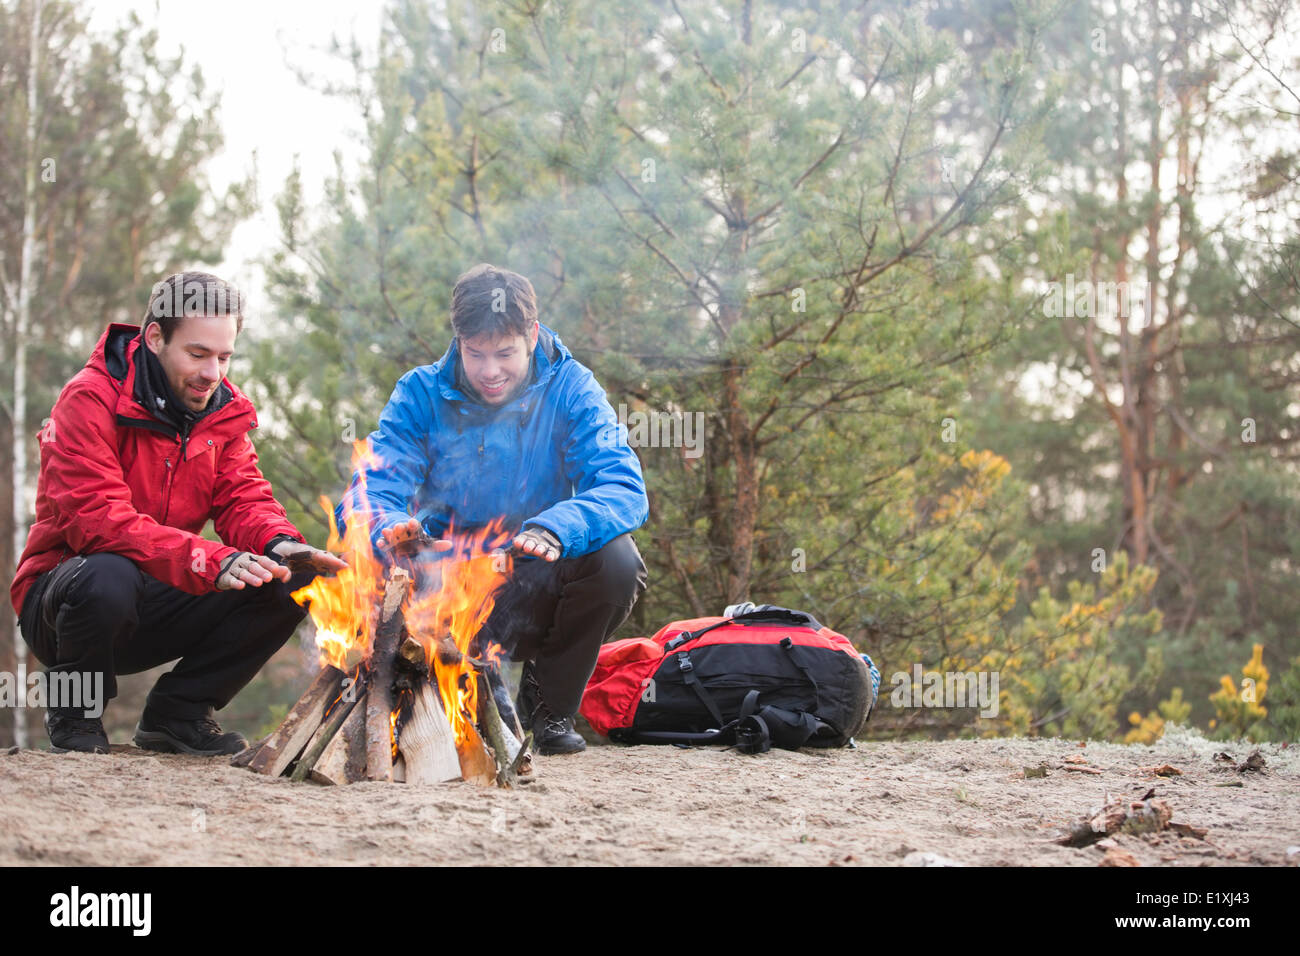 Male backpackers warming hands at campfire in forest - Stock Image